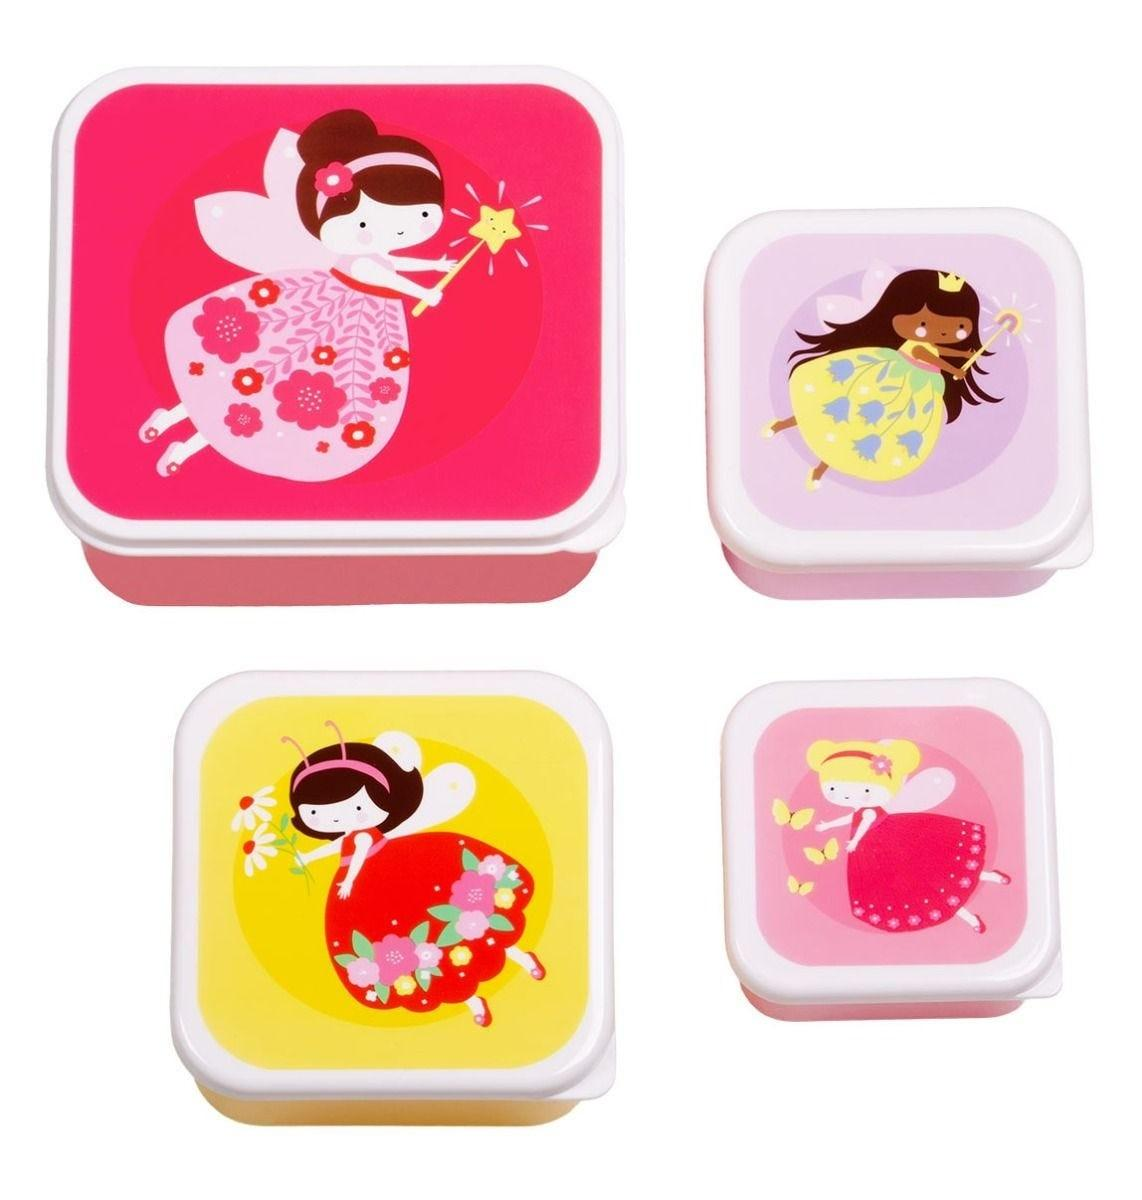 A Little Lovely Company - Lunch & snack box set: Fairies